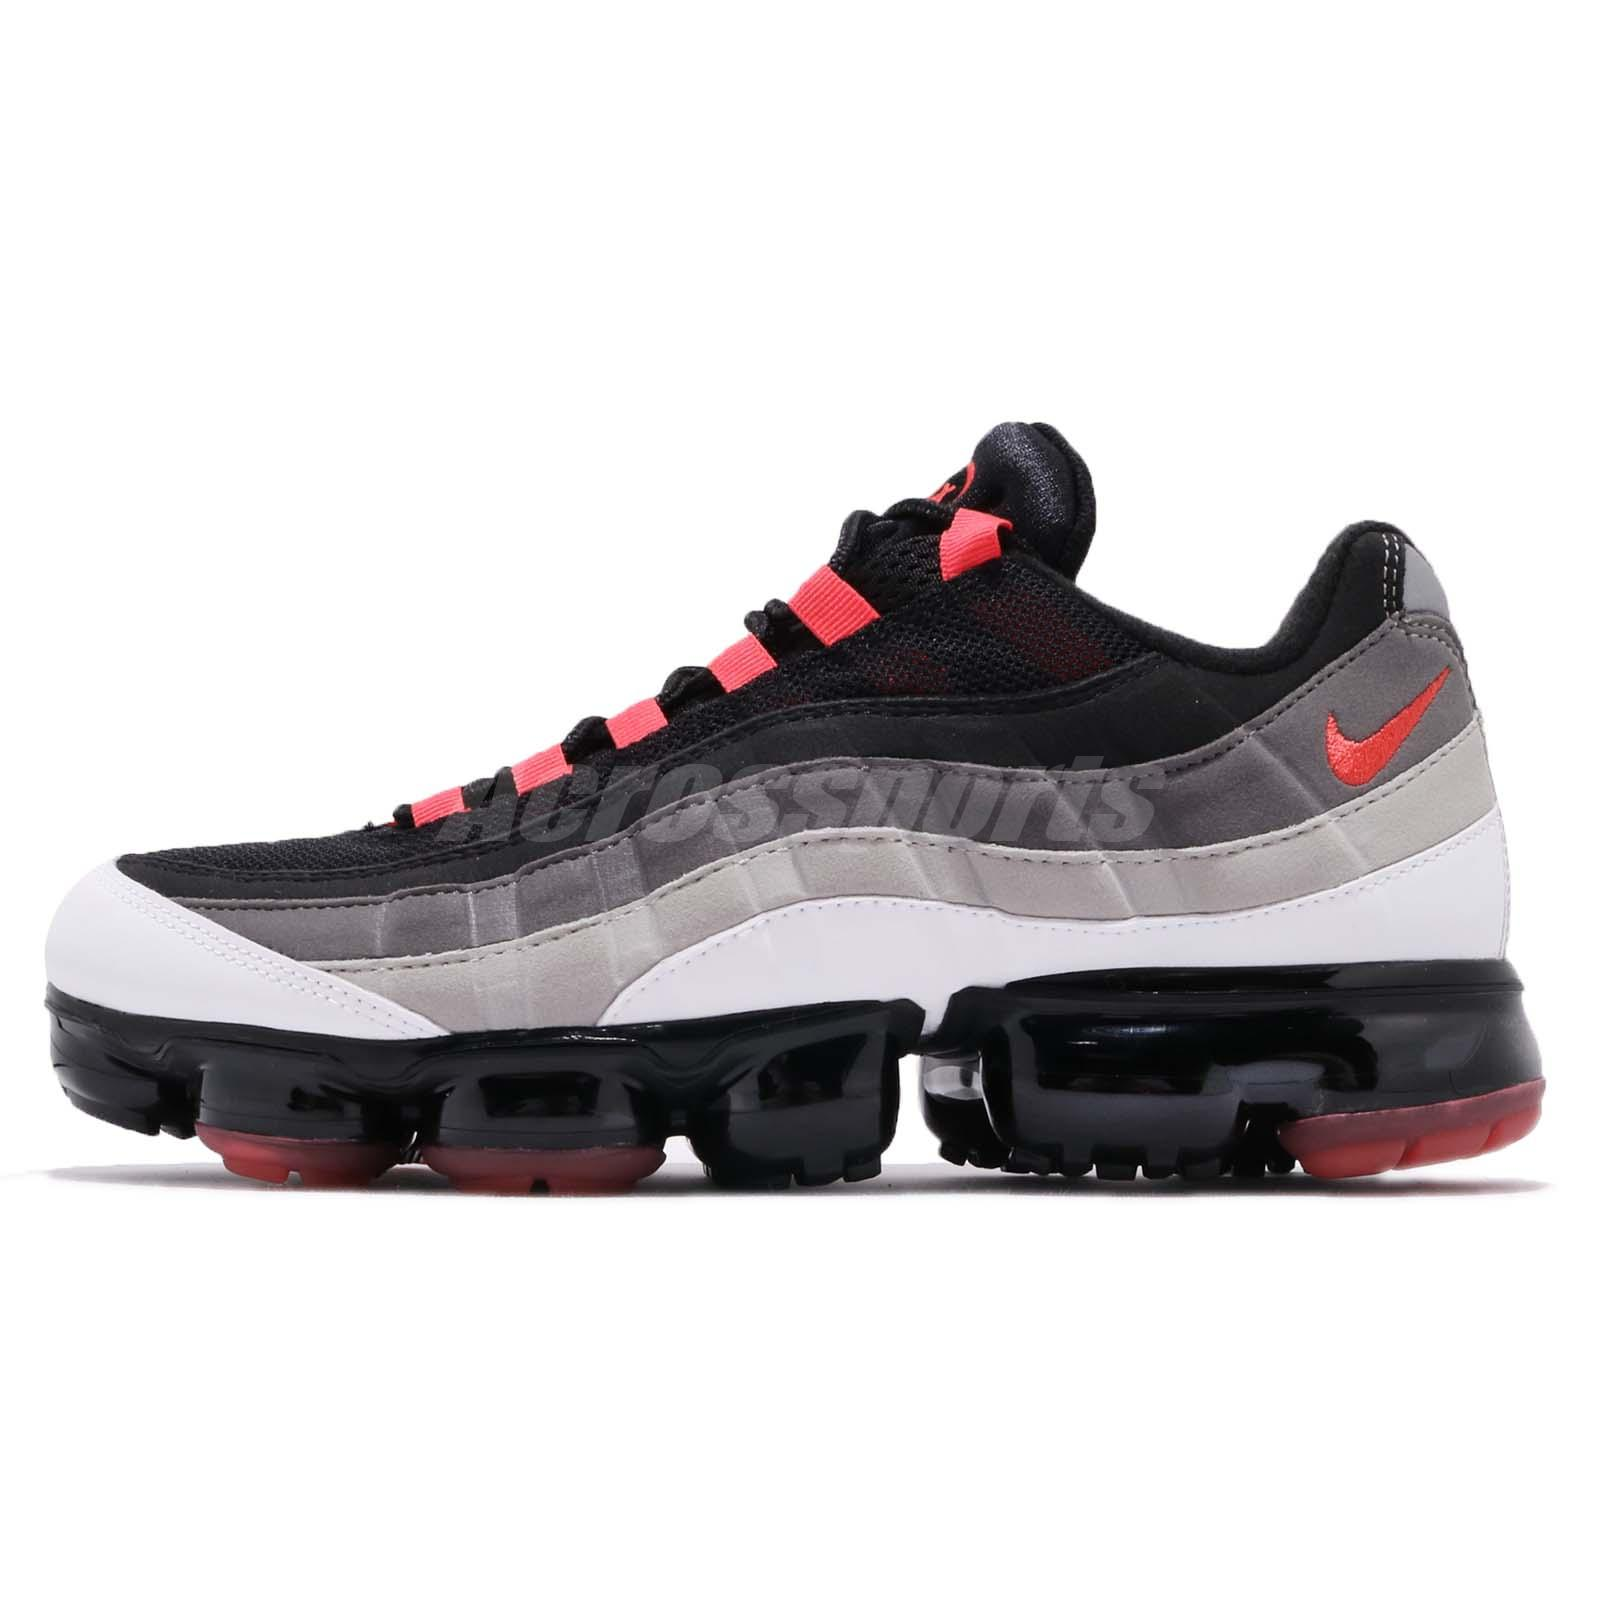 ae9b19723a Details about Nike Air Vapormax 95 Hot Red White Dark Pewter Men Running  Shoes AJ7292-101